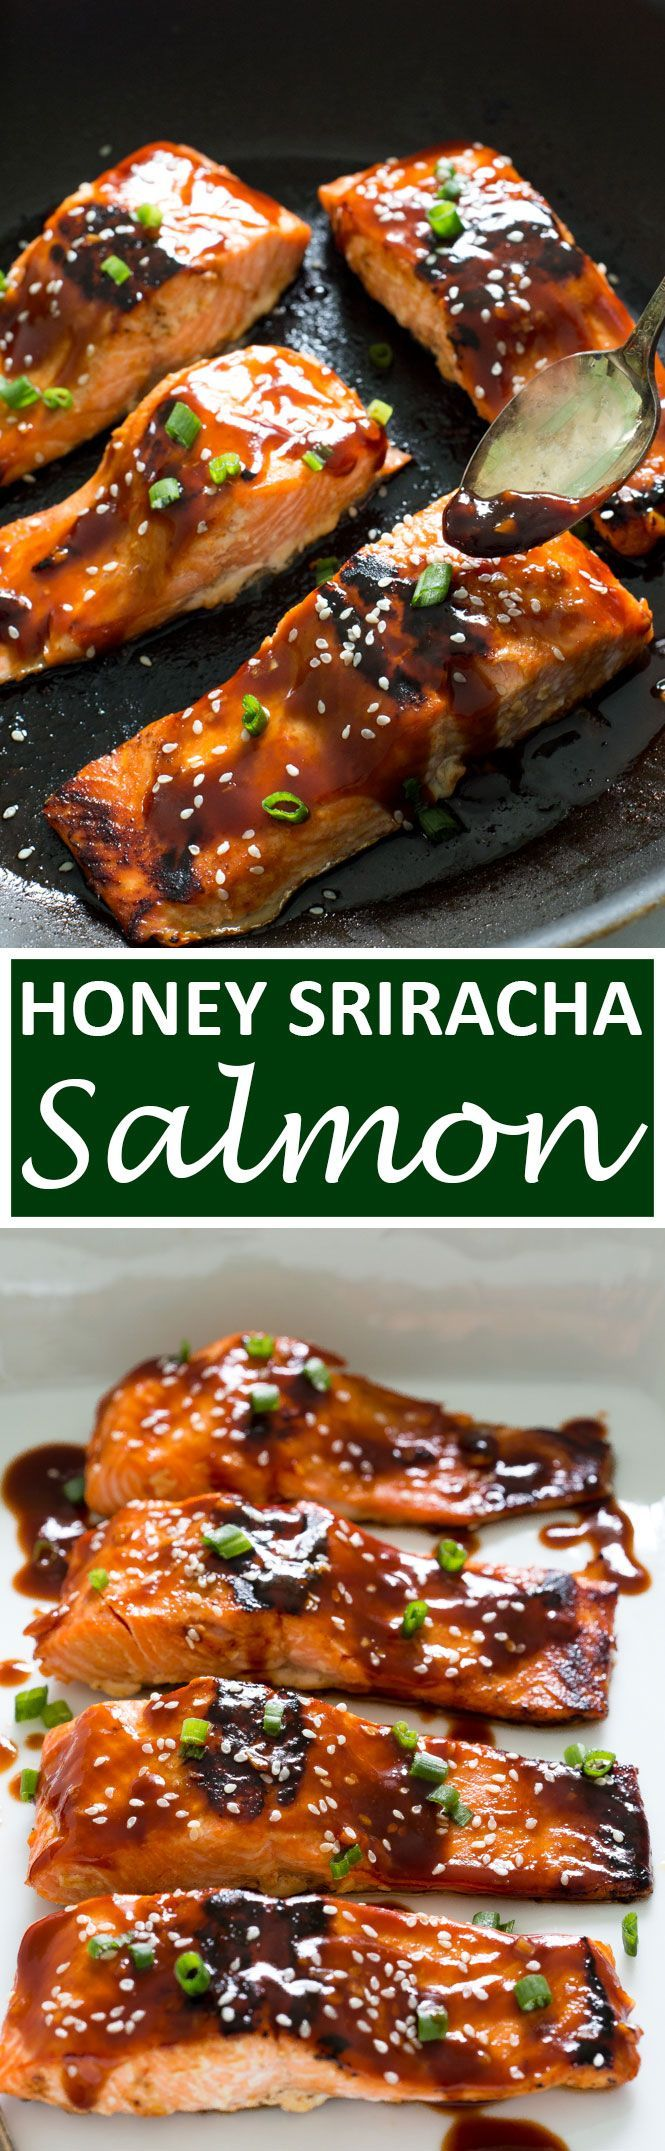 Sweet and Spicy Honey Sriracha Salmon. A super easy and healthy dinner. Serve with rice and veggies to make it a meal!   chefsavvy.com